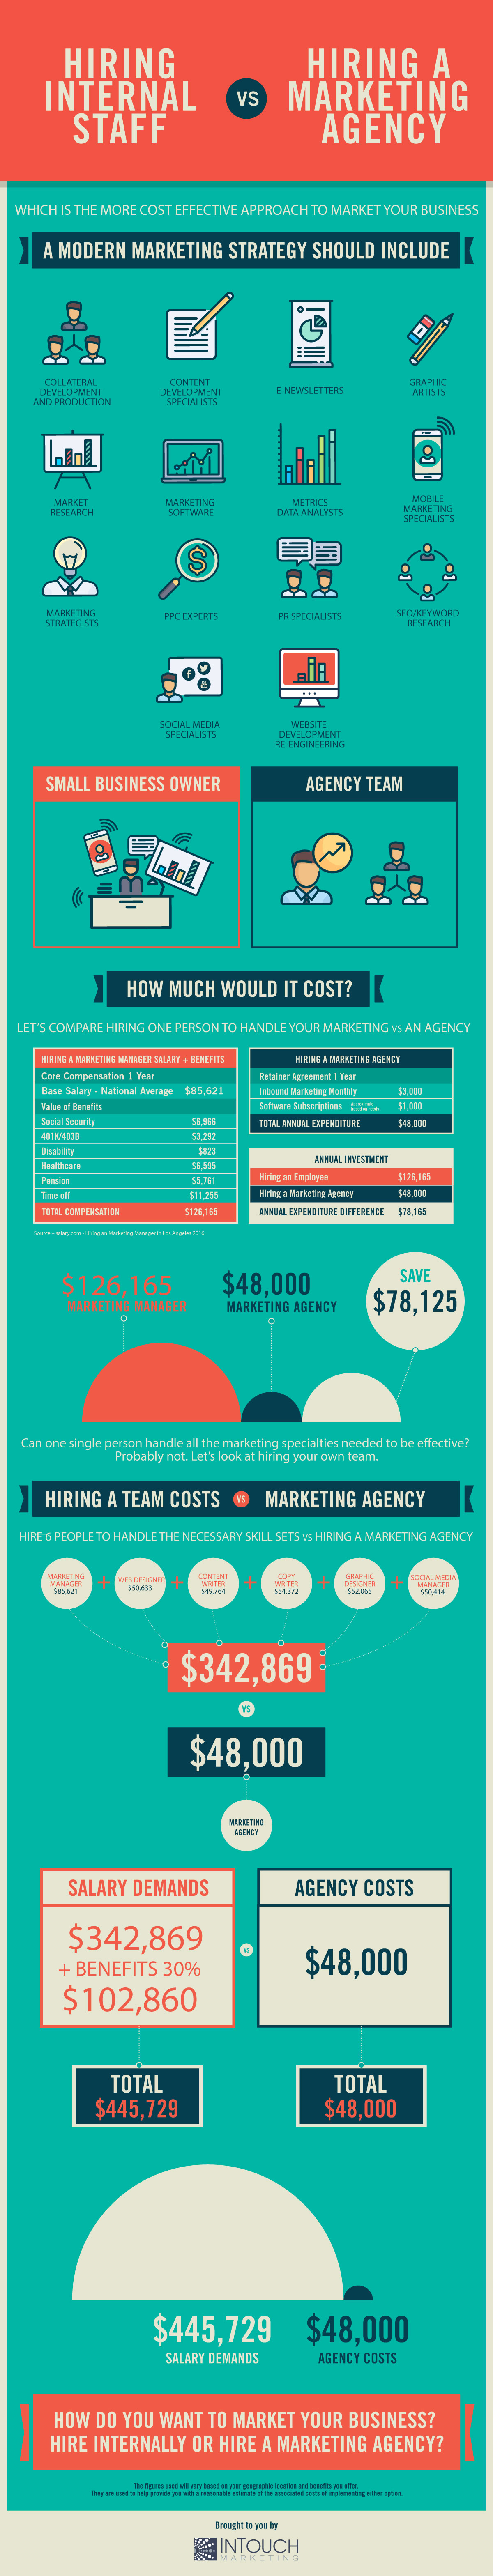 http://blog.intouch-marketing.com/hubfs/Infographics/Hiring-A-Marketing-Firm-vs-Hiring-Internal-Staff-Infographic